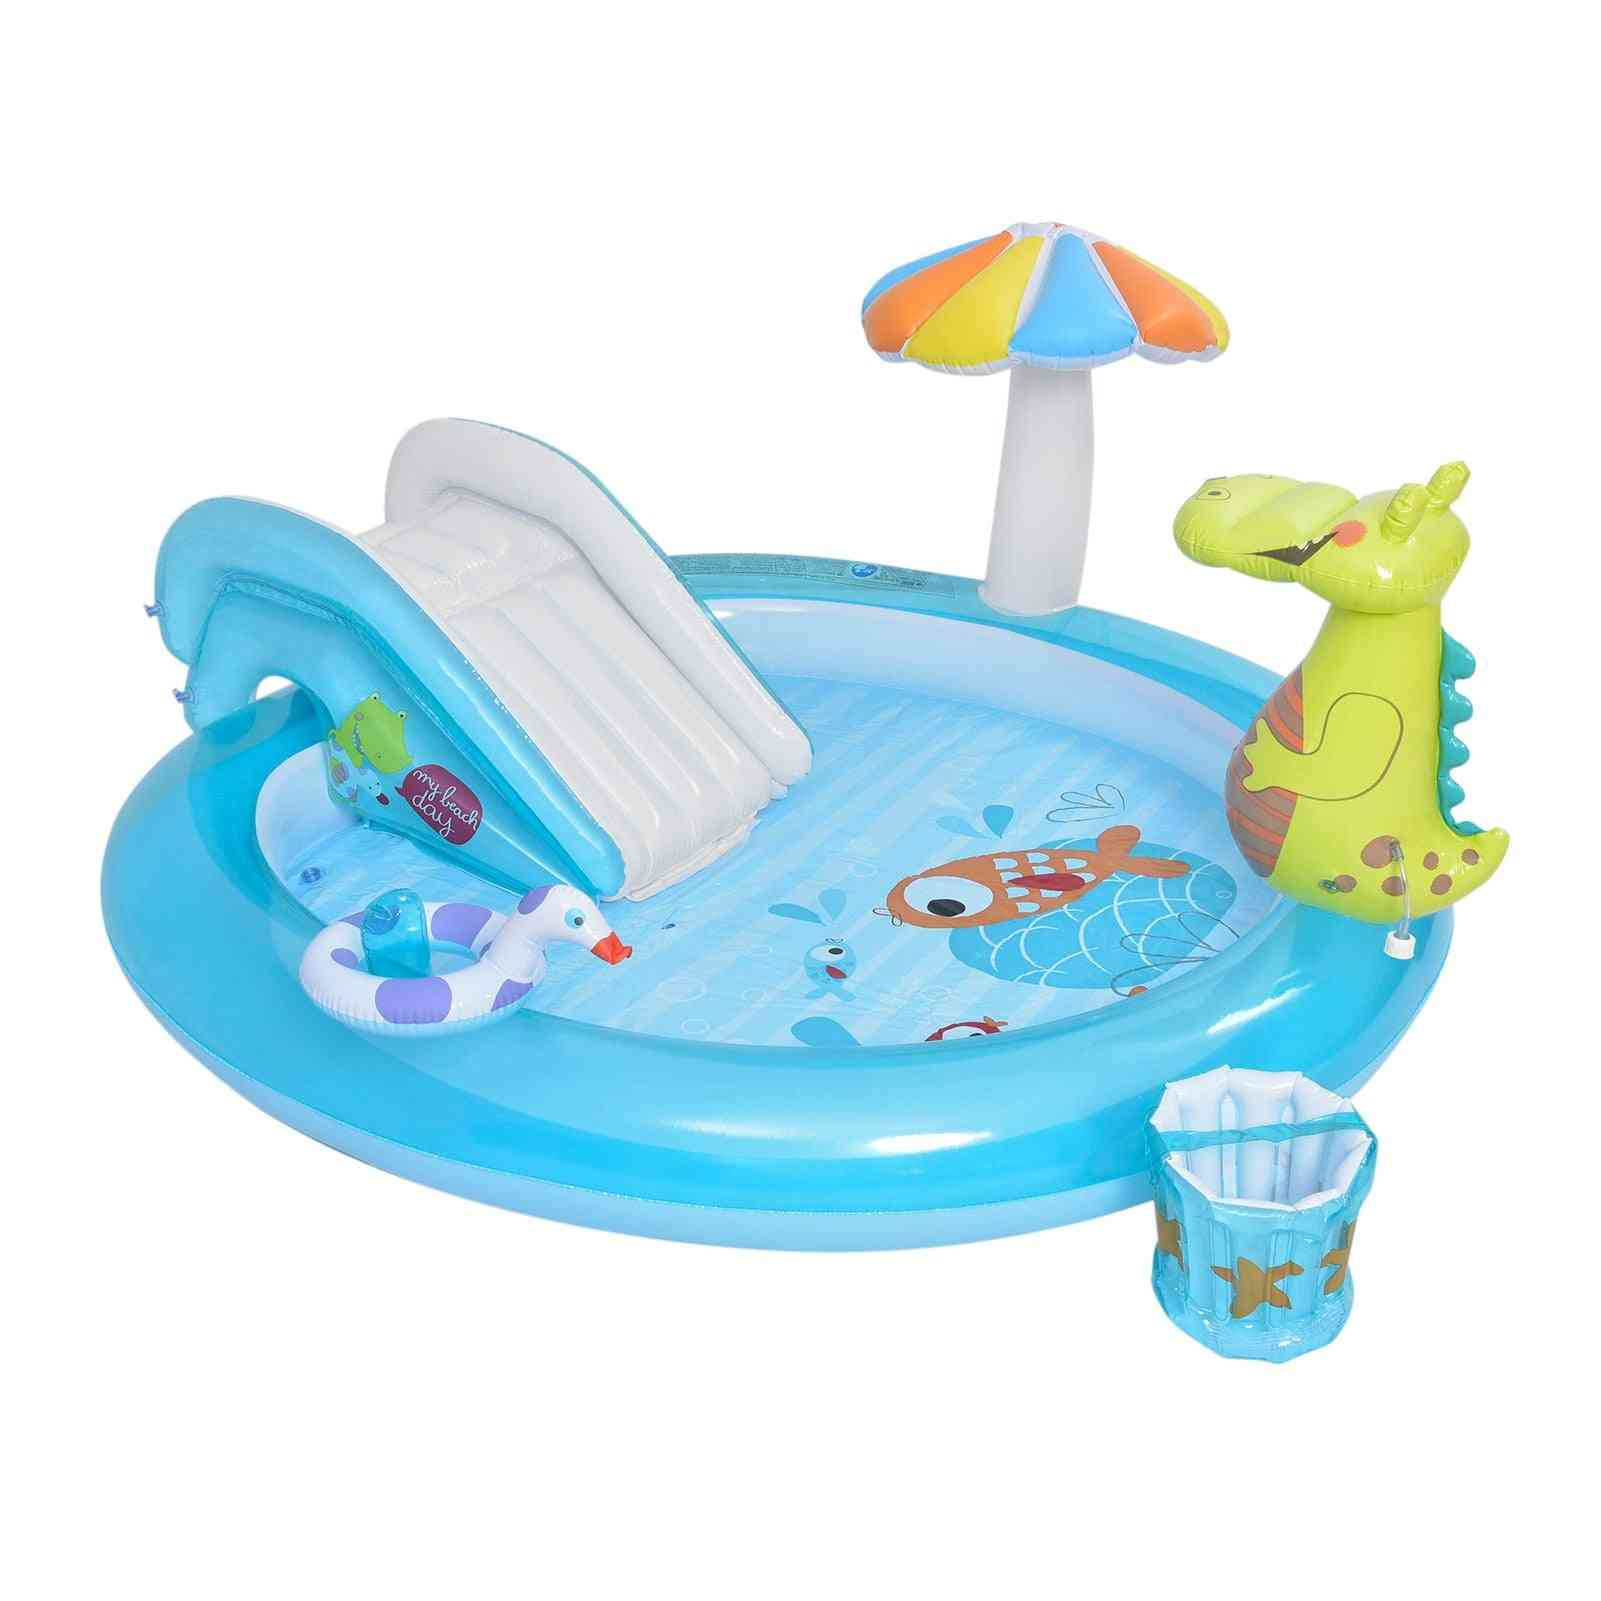 Inflatable Play Center Blow Up Swimming Pool For Kids Water Fun Pool